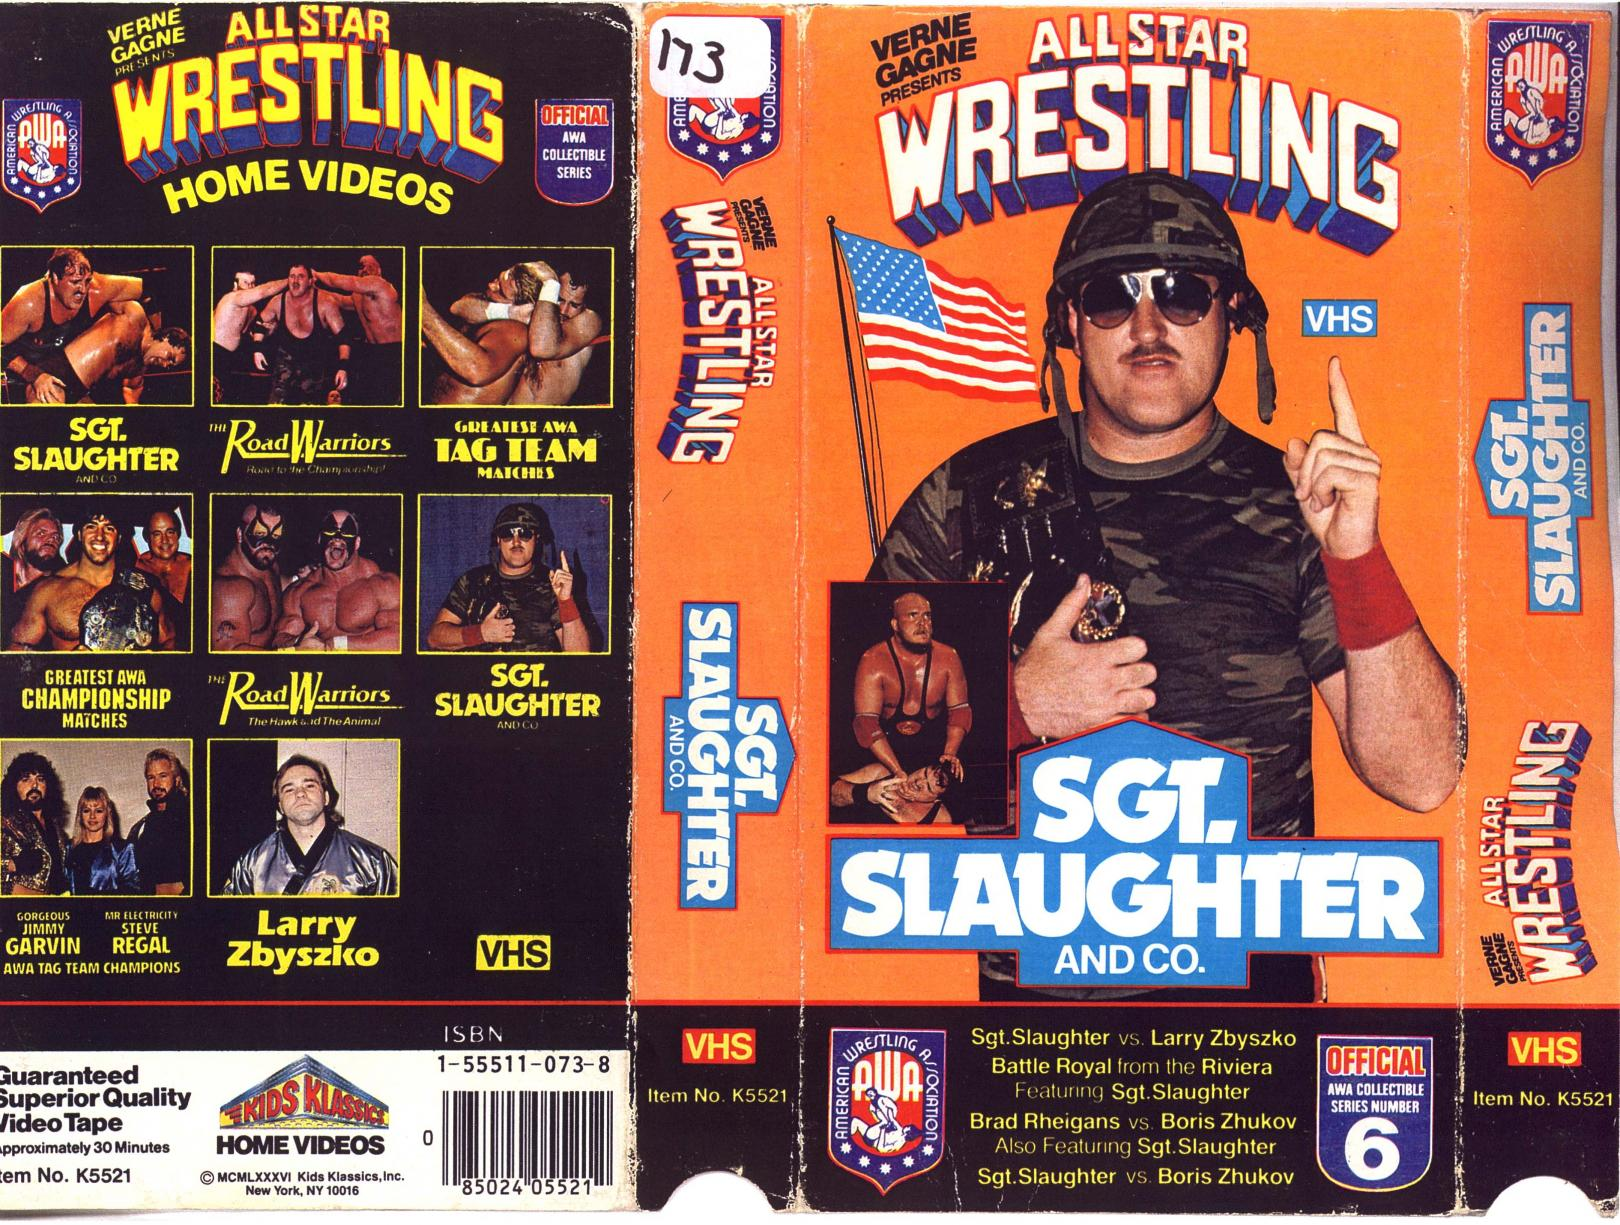 All_Star_Wrestling_Sgt_Slaughter